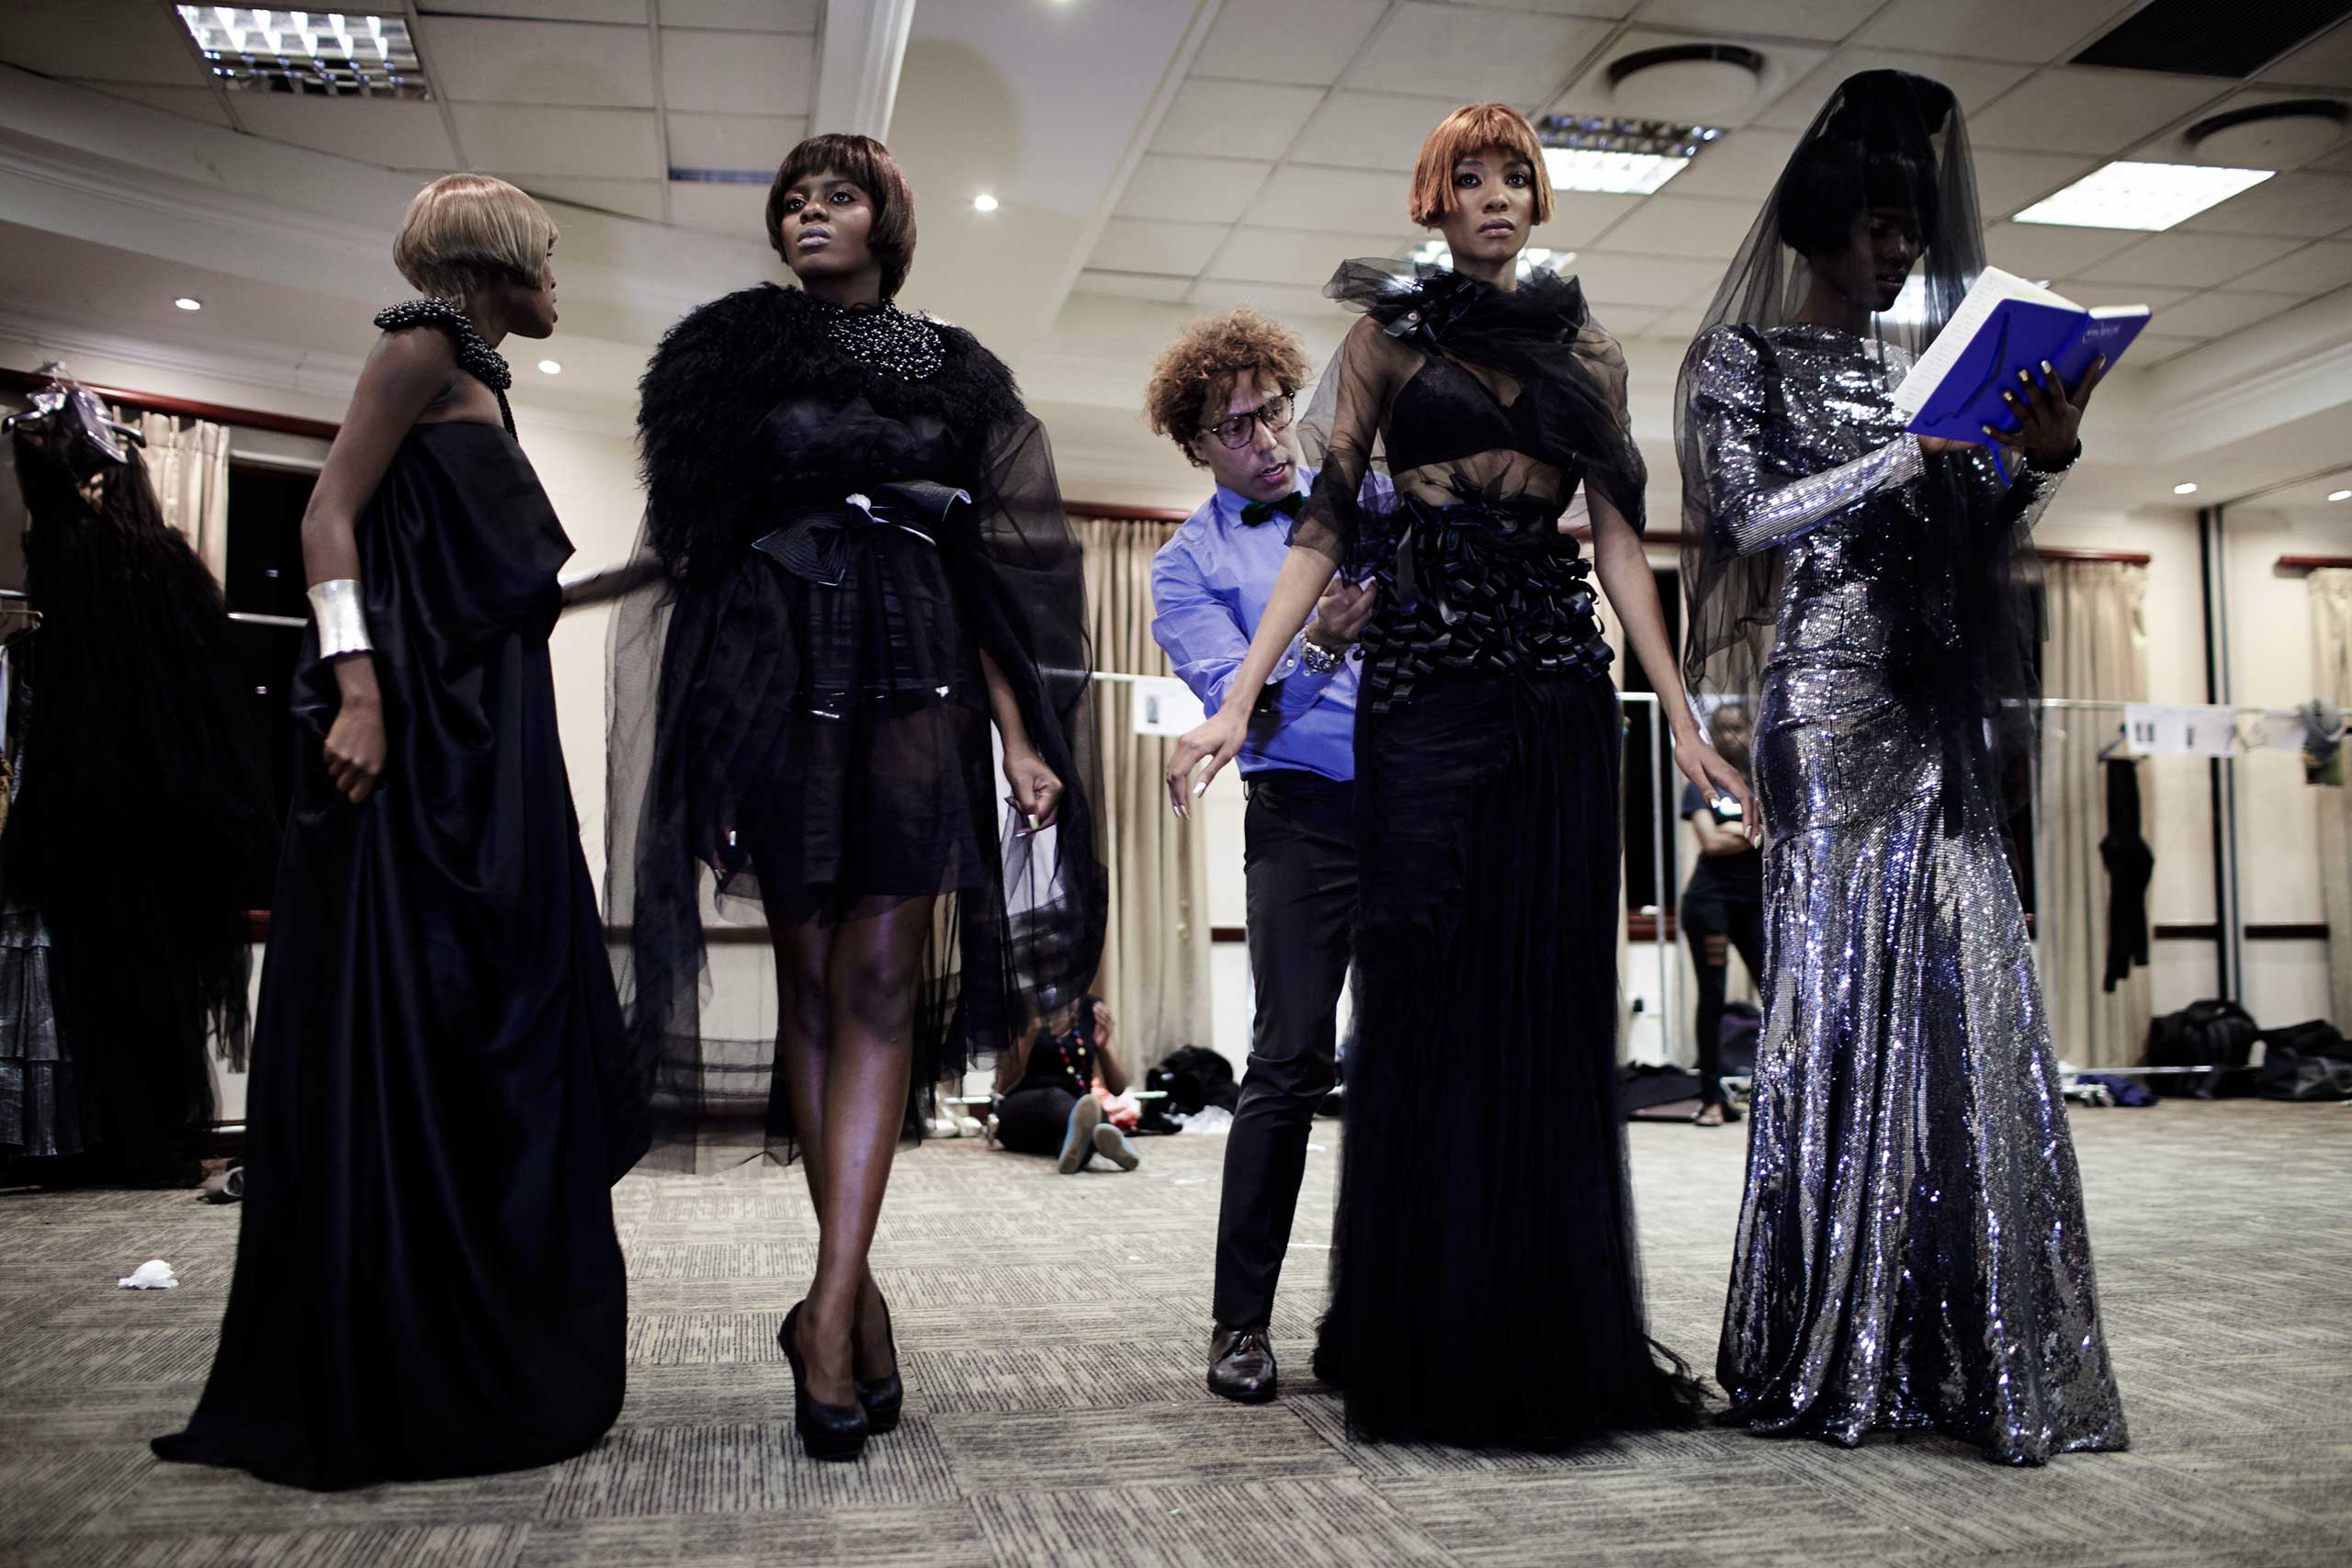 Egyptian designer Soucha prepares his models backstage before his fashion show at Color in the Desert Fashion week on Sept. 1, 2012 in Gaborone, Botswana.